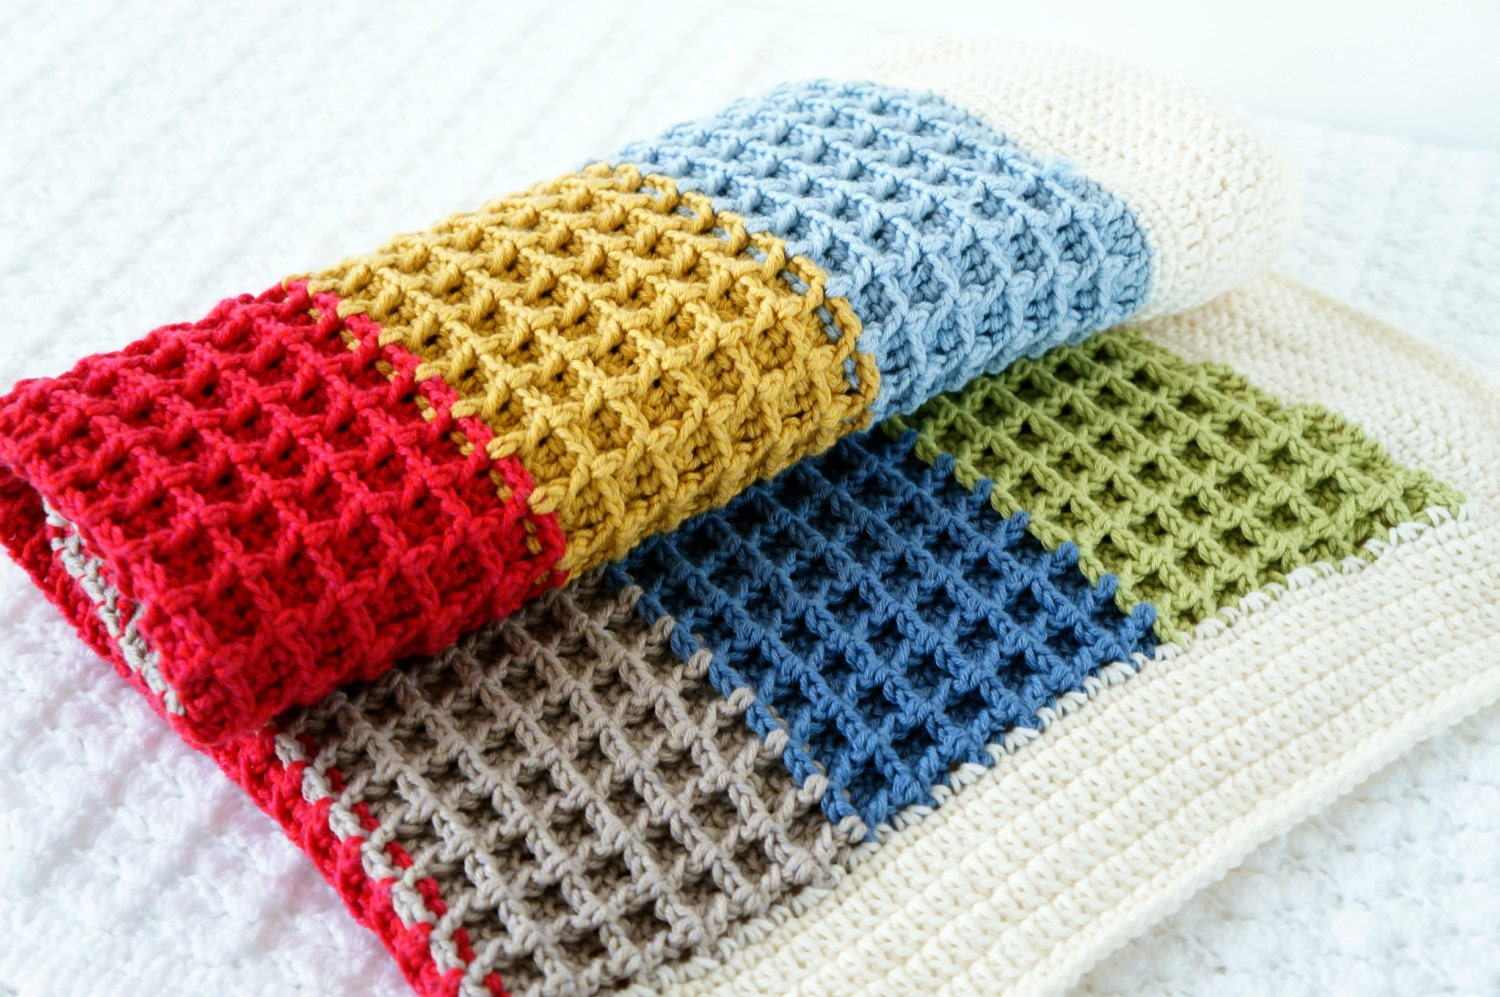 Crochet Pattern For Swaddle Blanket : Toddler Blanket Crochet Bedding Newborn Swaddle Receiving